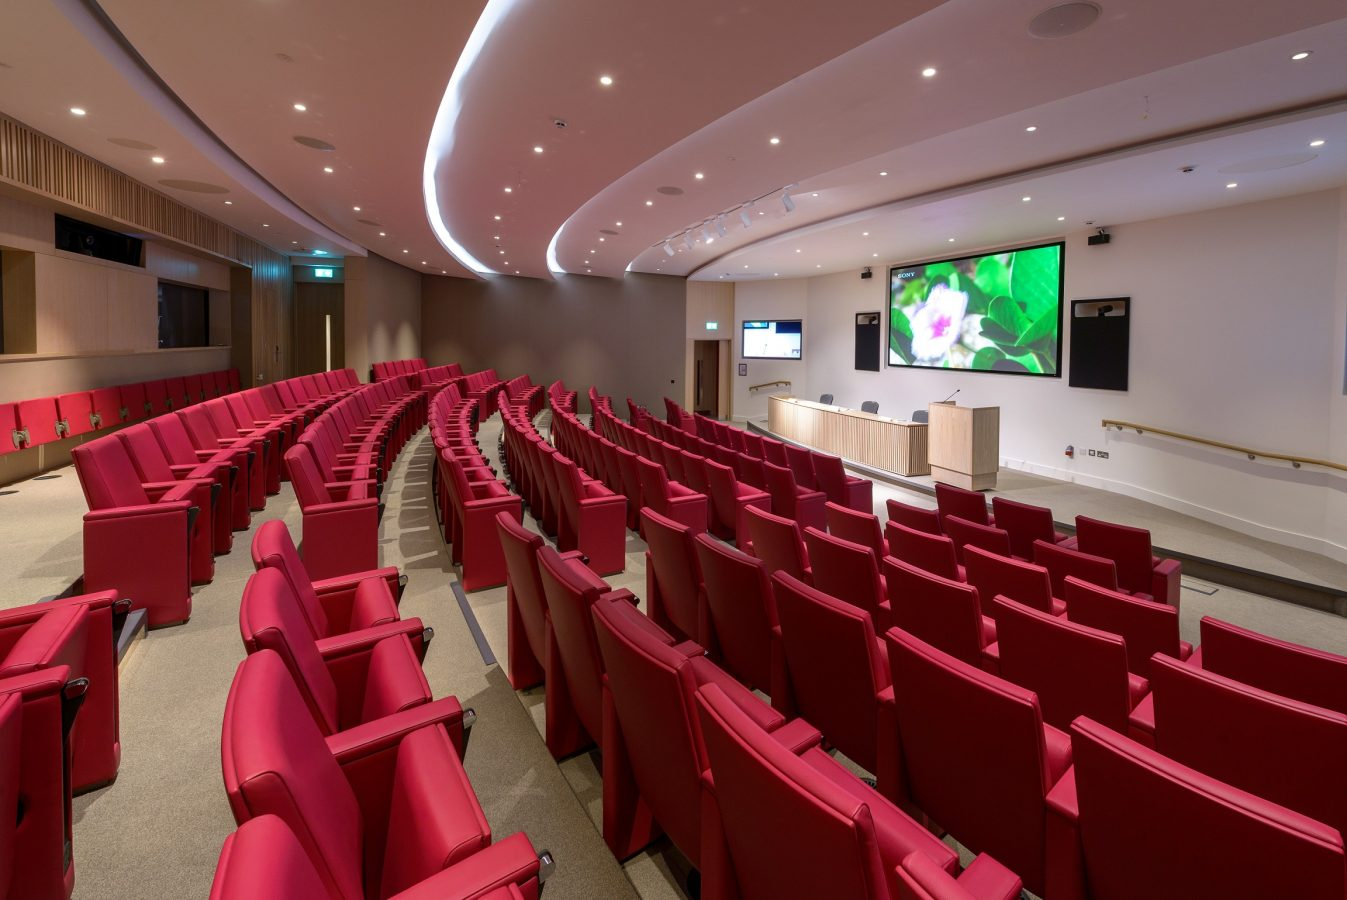 AV systems for Corporate spaces